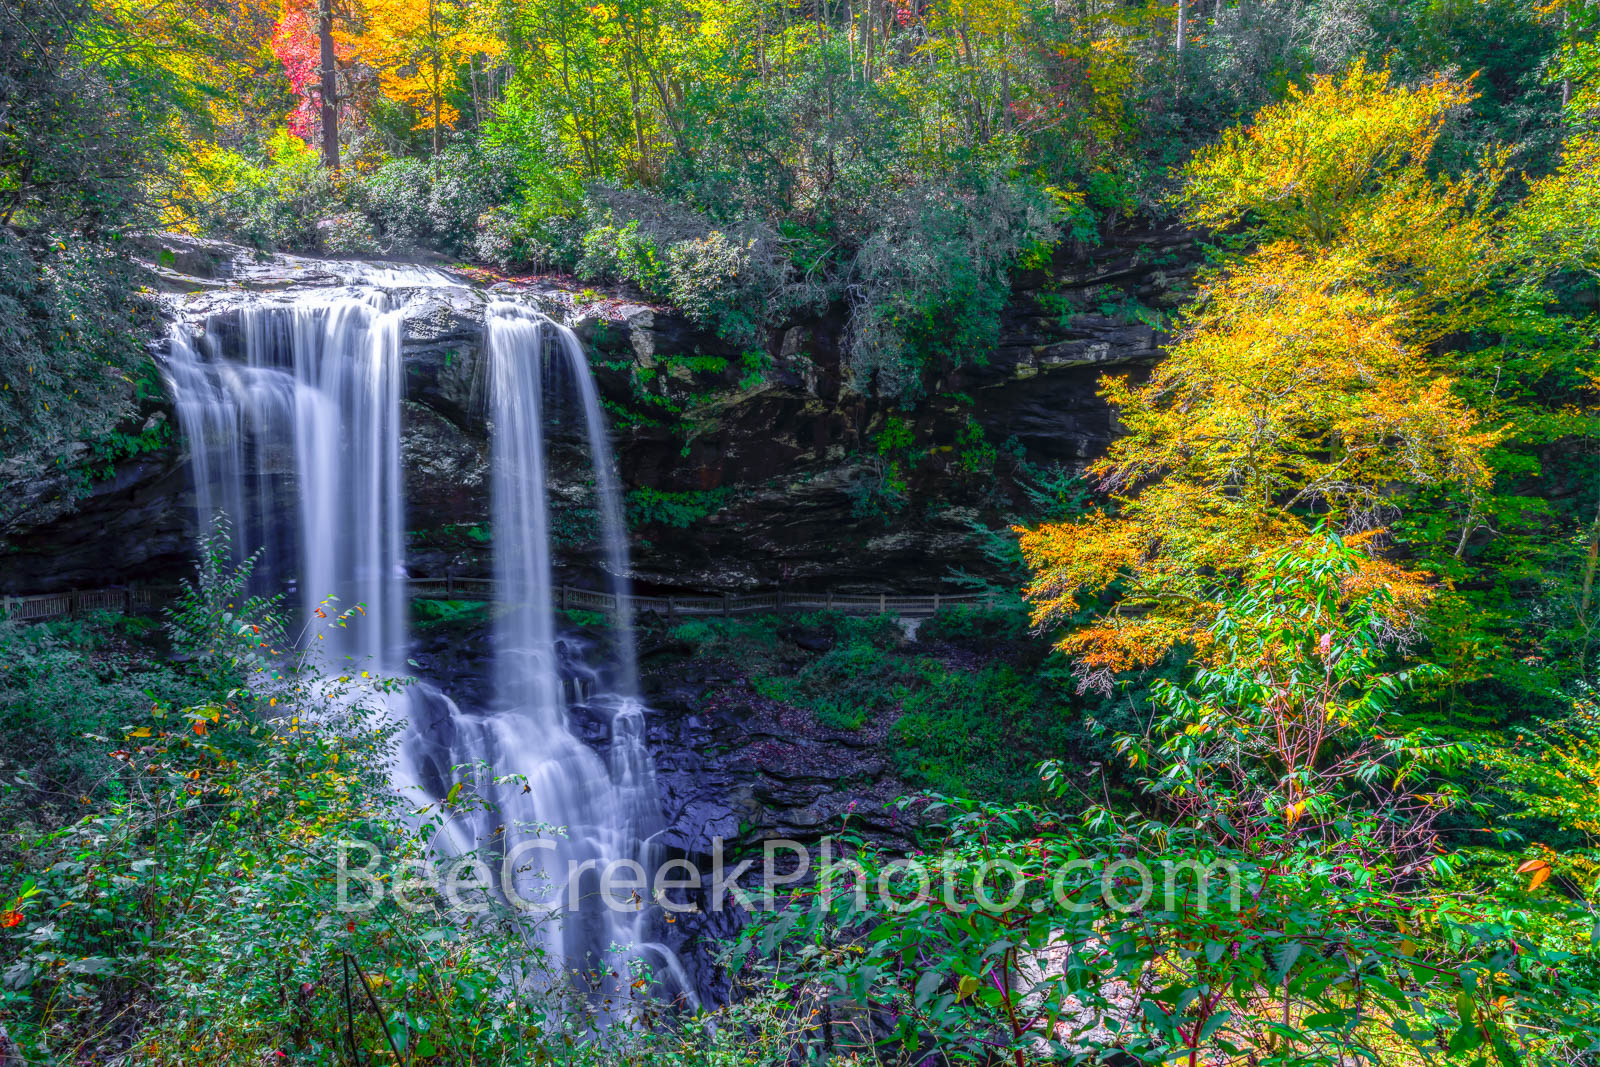 dry falls, waterfall, falls, stream, creek, flow, water falling, autumn, colors, smoky mountain, smokies, downstream, nature, natural,  north caroline, great smoky mountains, national scenic byway, na, photo